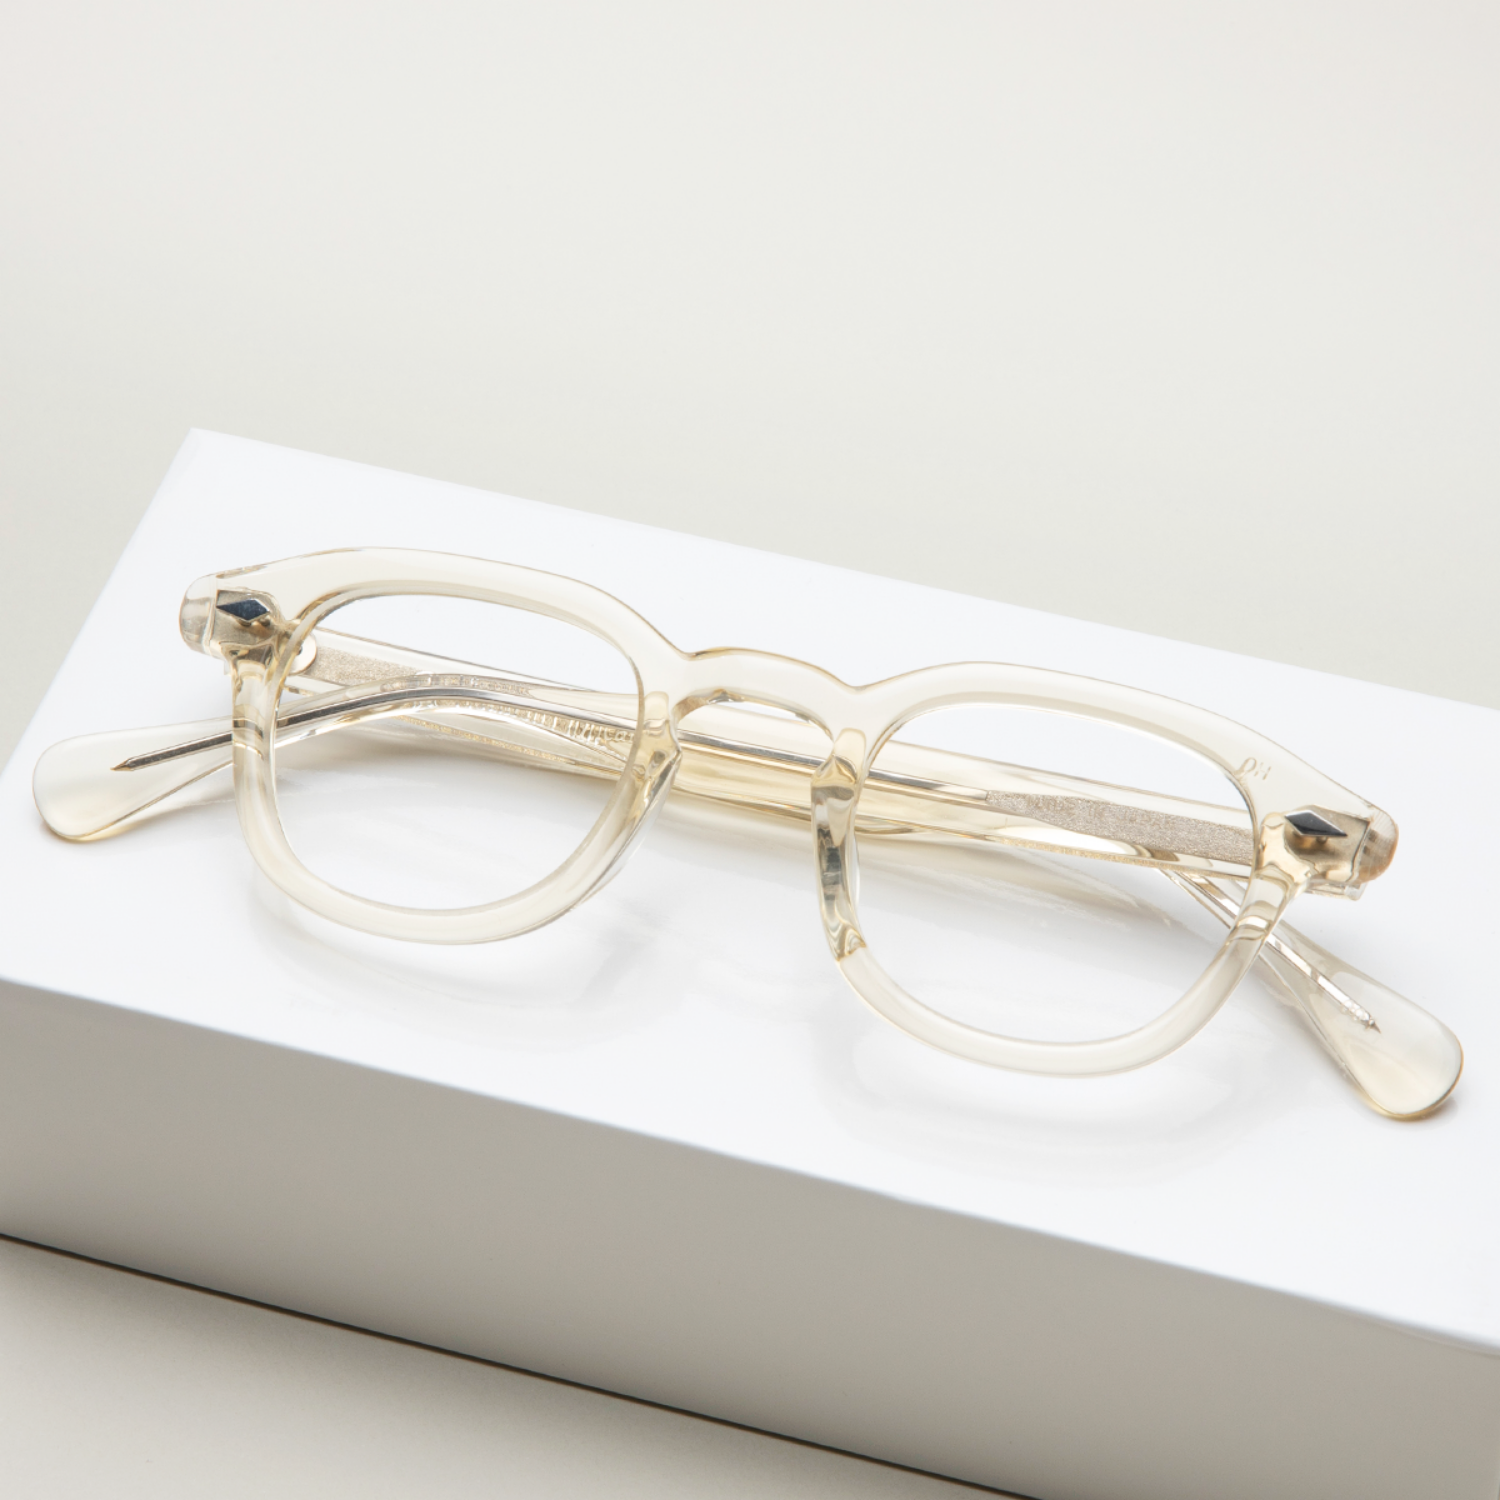 하만옵티컬 안경 월리스 WALLIS KINARI CLEAR HARMAN OPTICAL